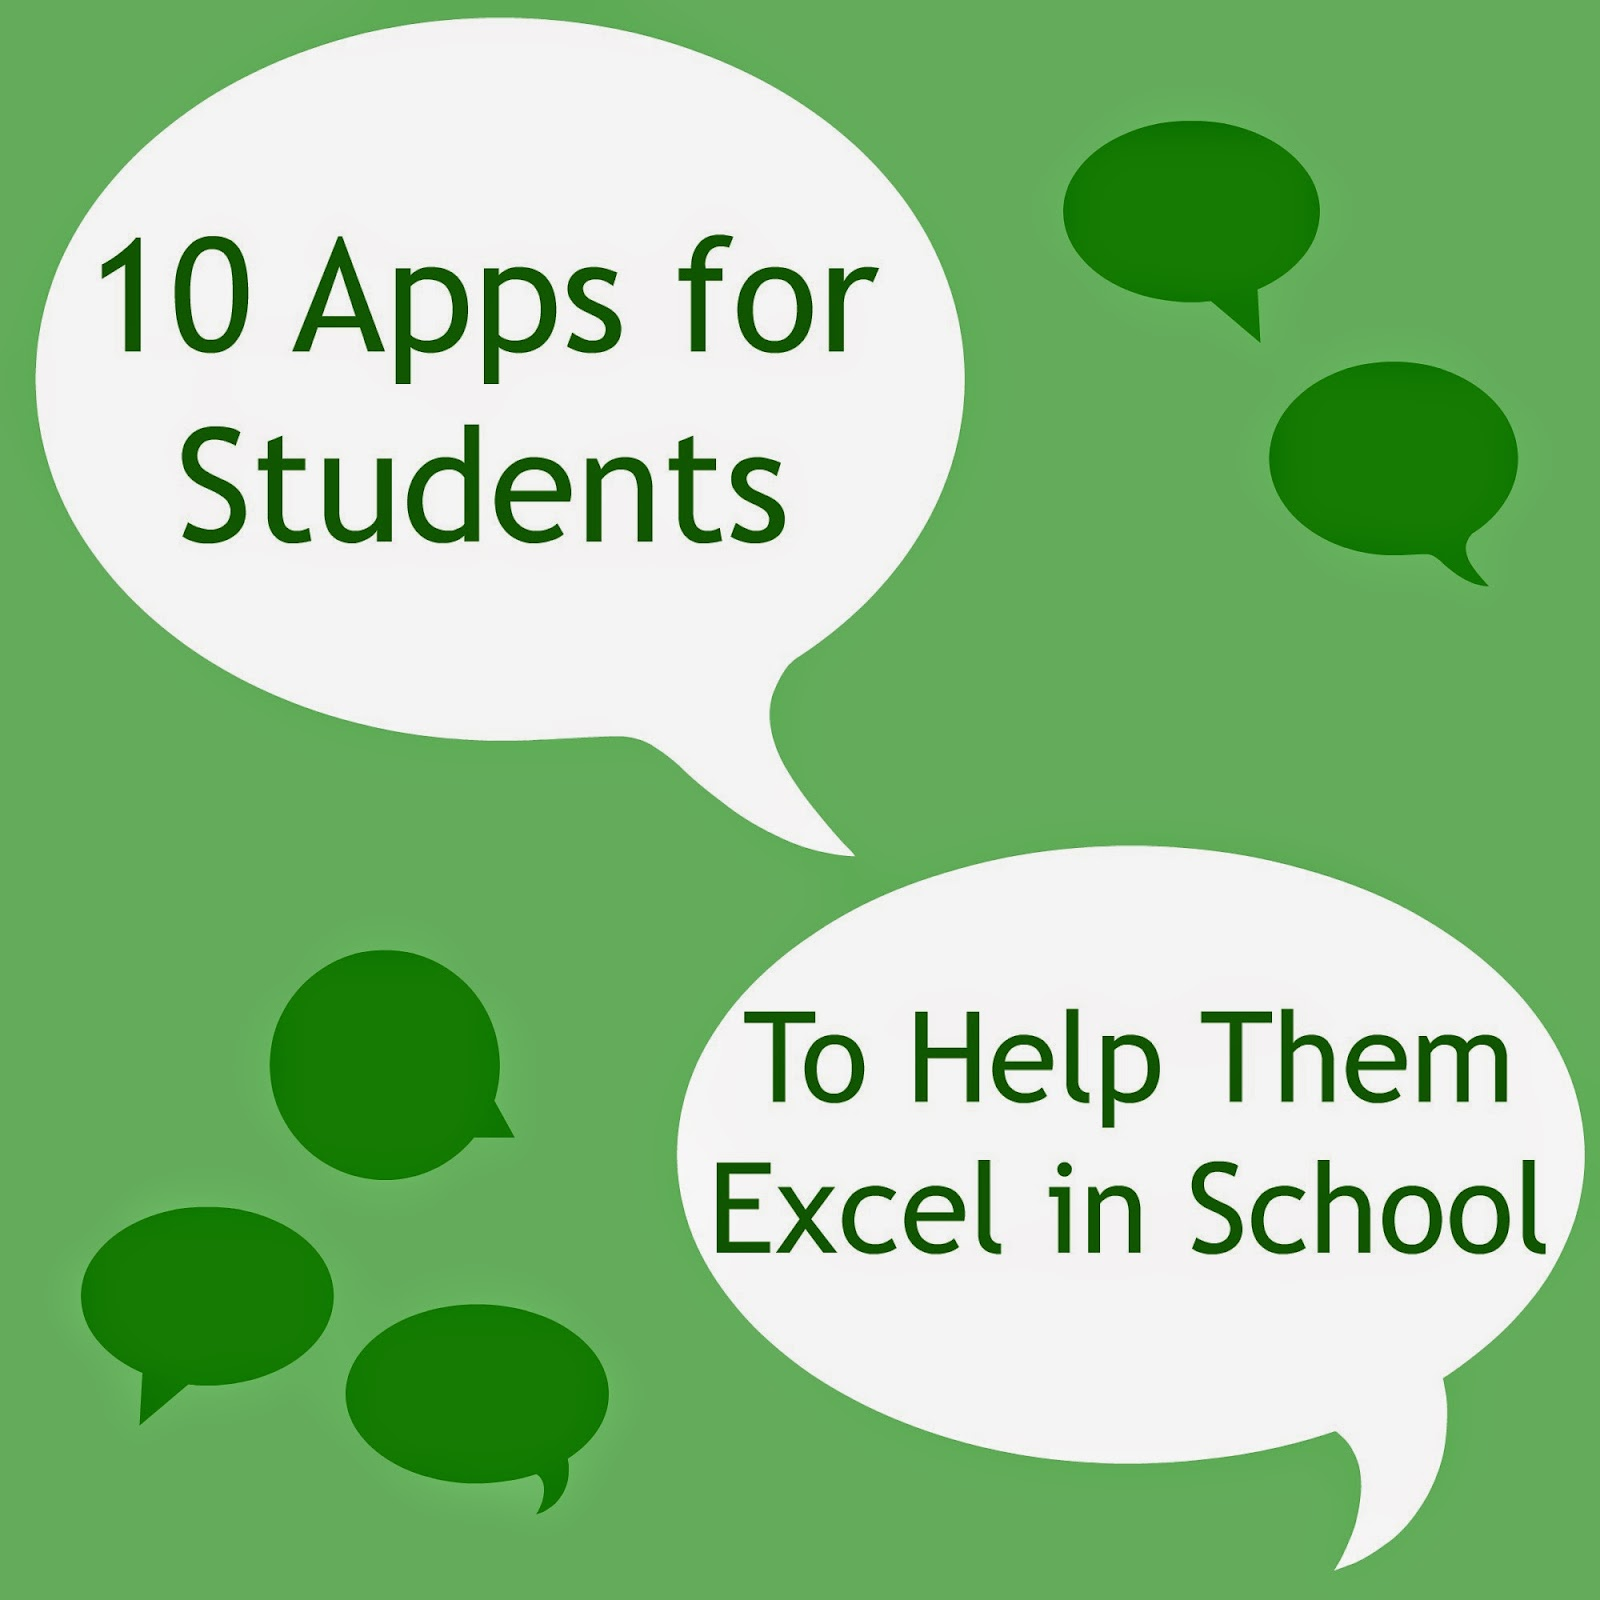 10 best apps for students to help them excel in school